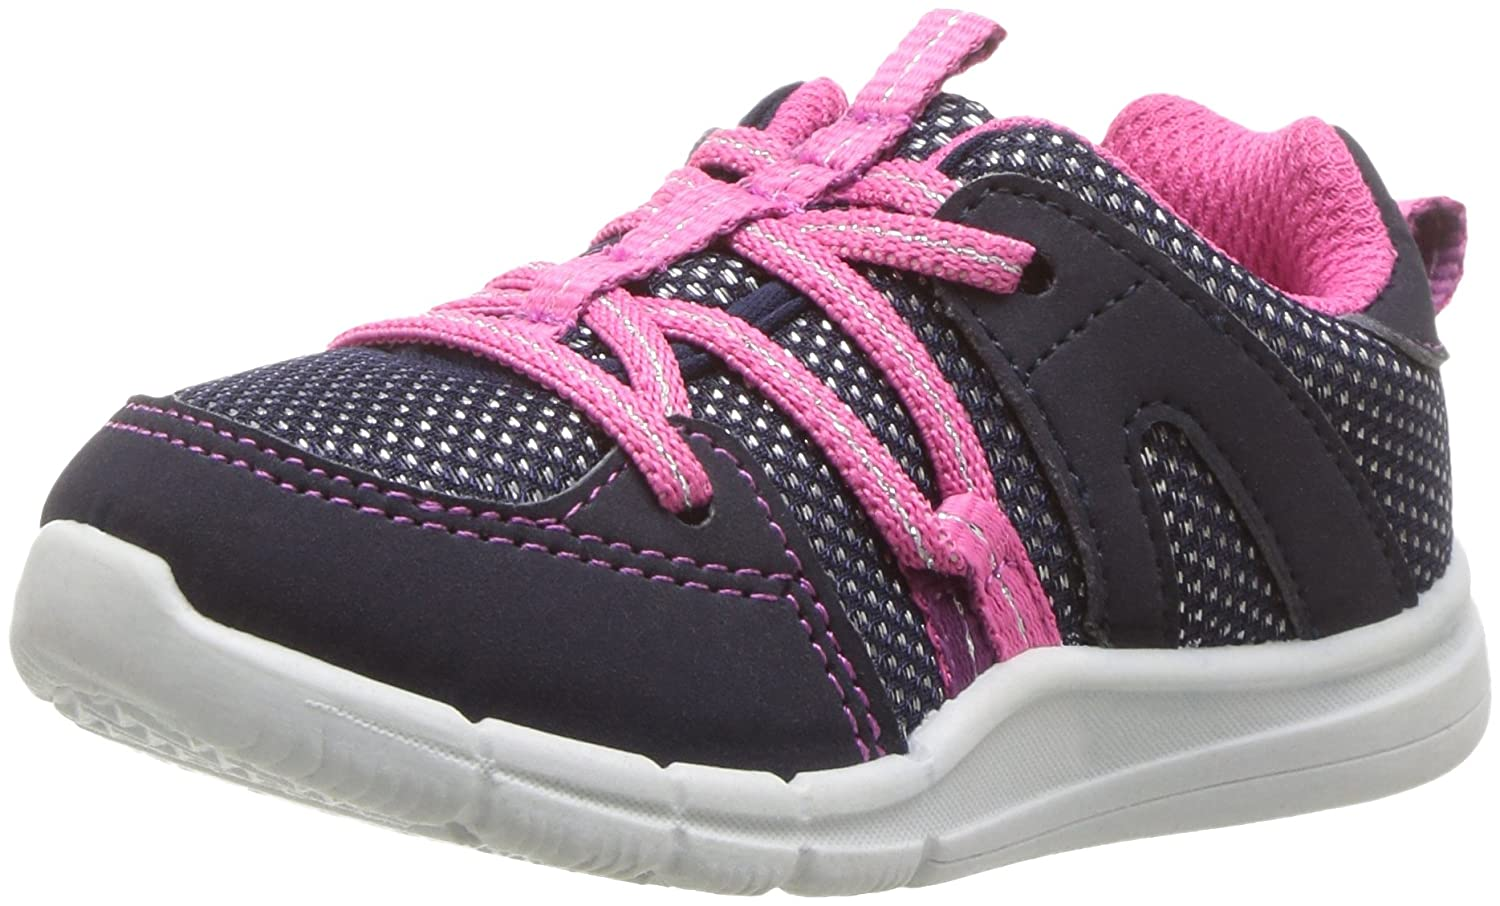 OshKosh B'Gosh Kids' Deniz Sneaker OshKosh B'Gosh OF180506